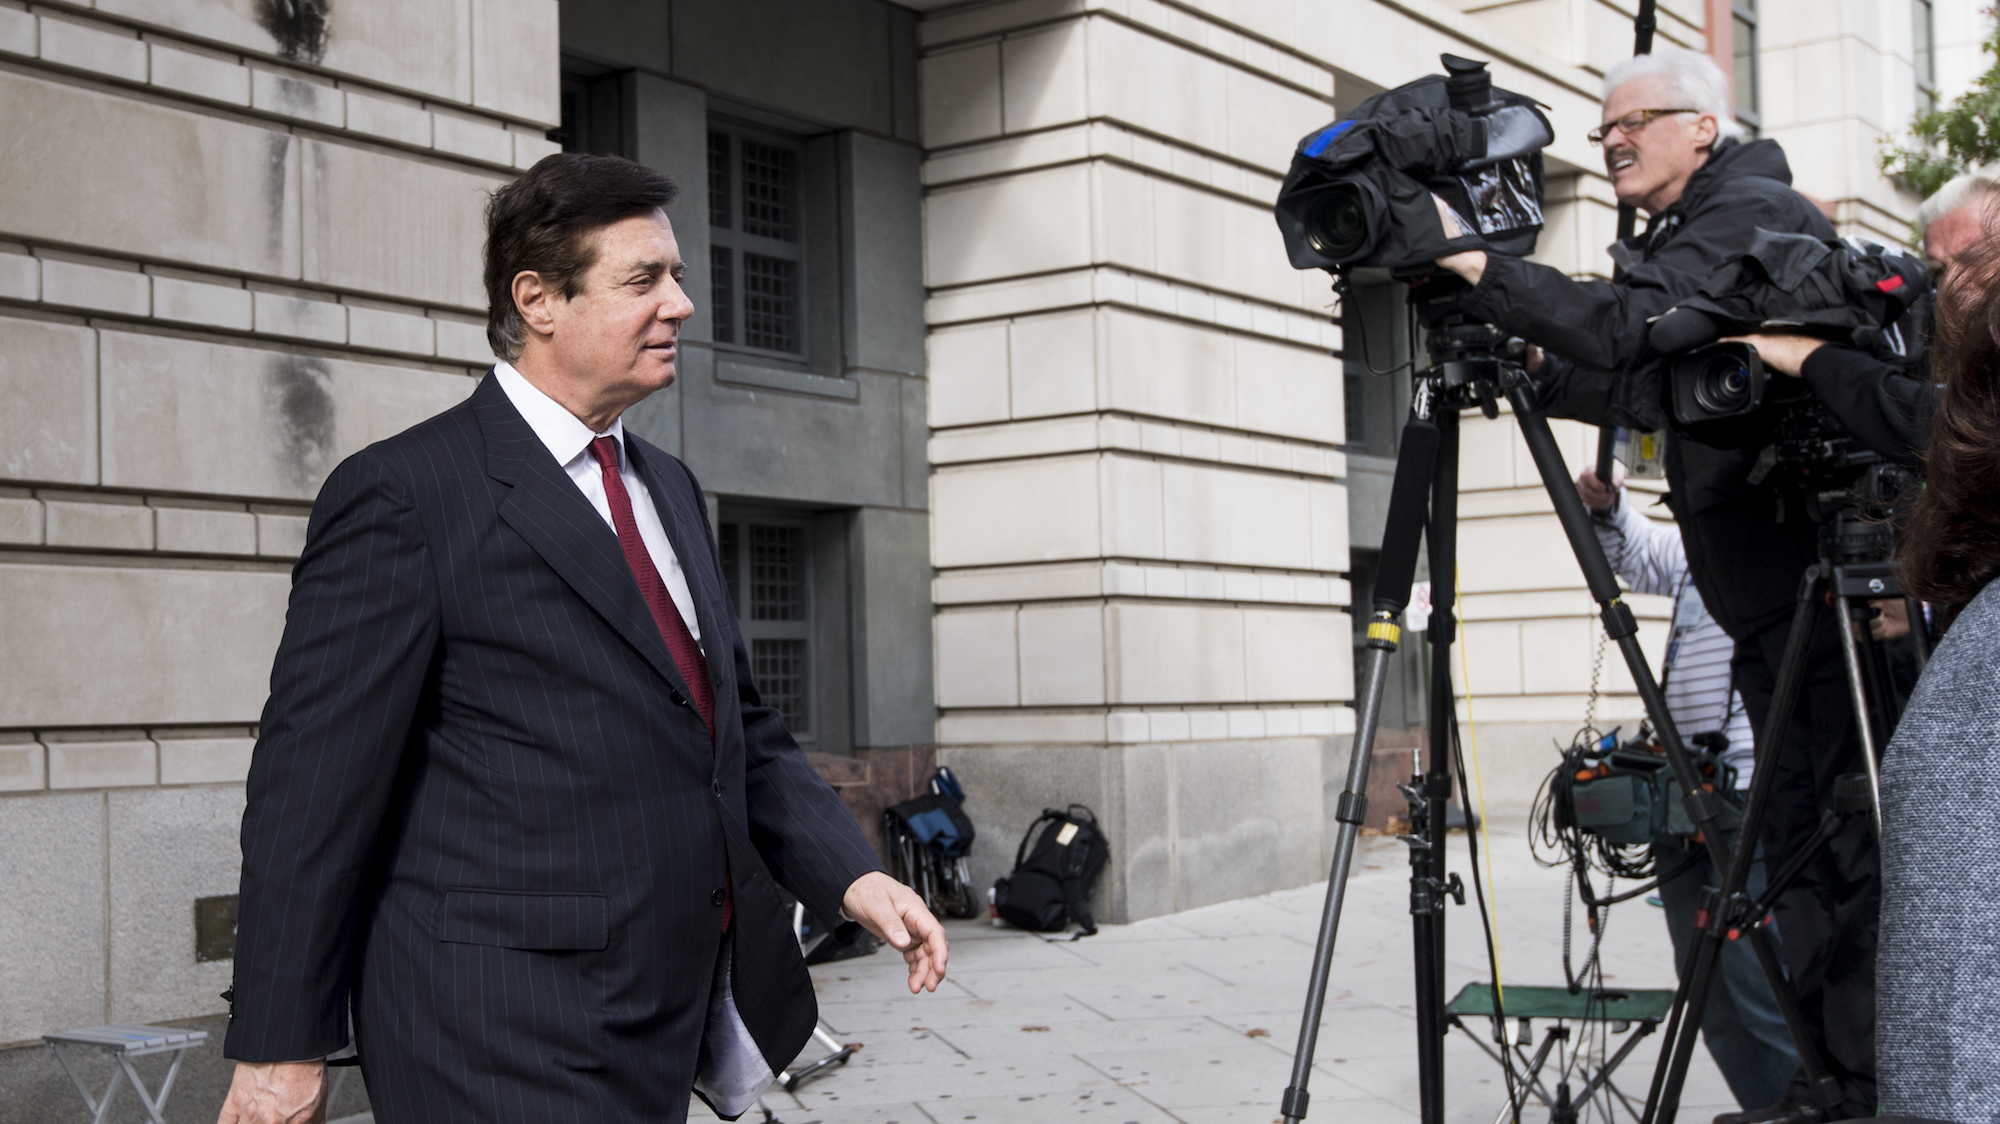 At long last, Paul Manafort is heading to prison